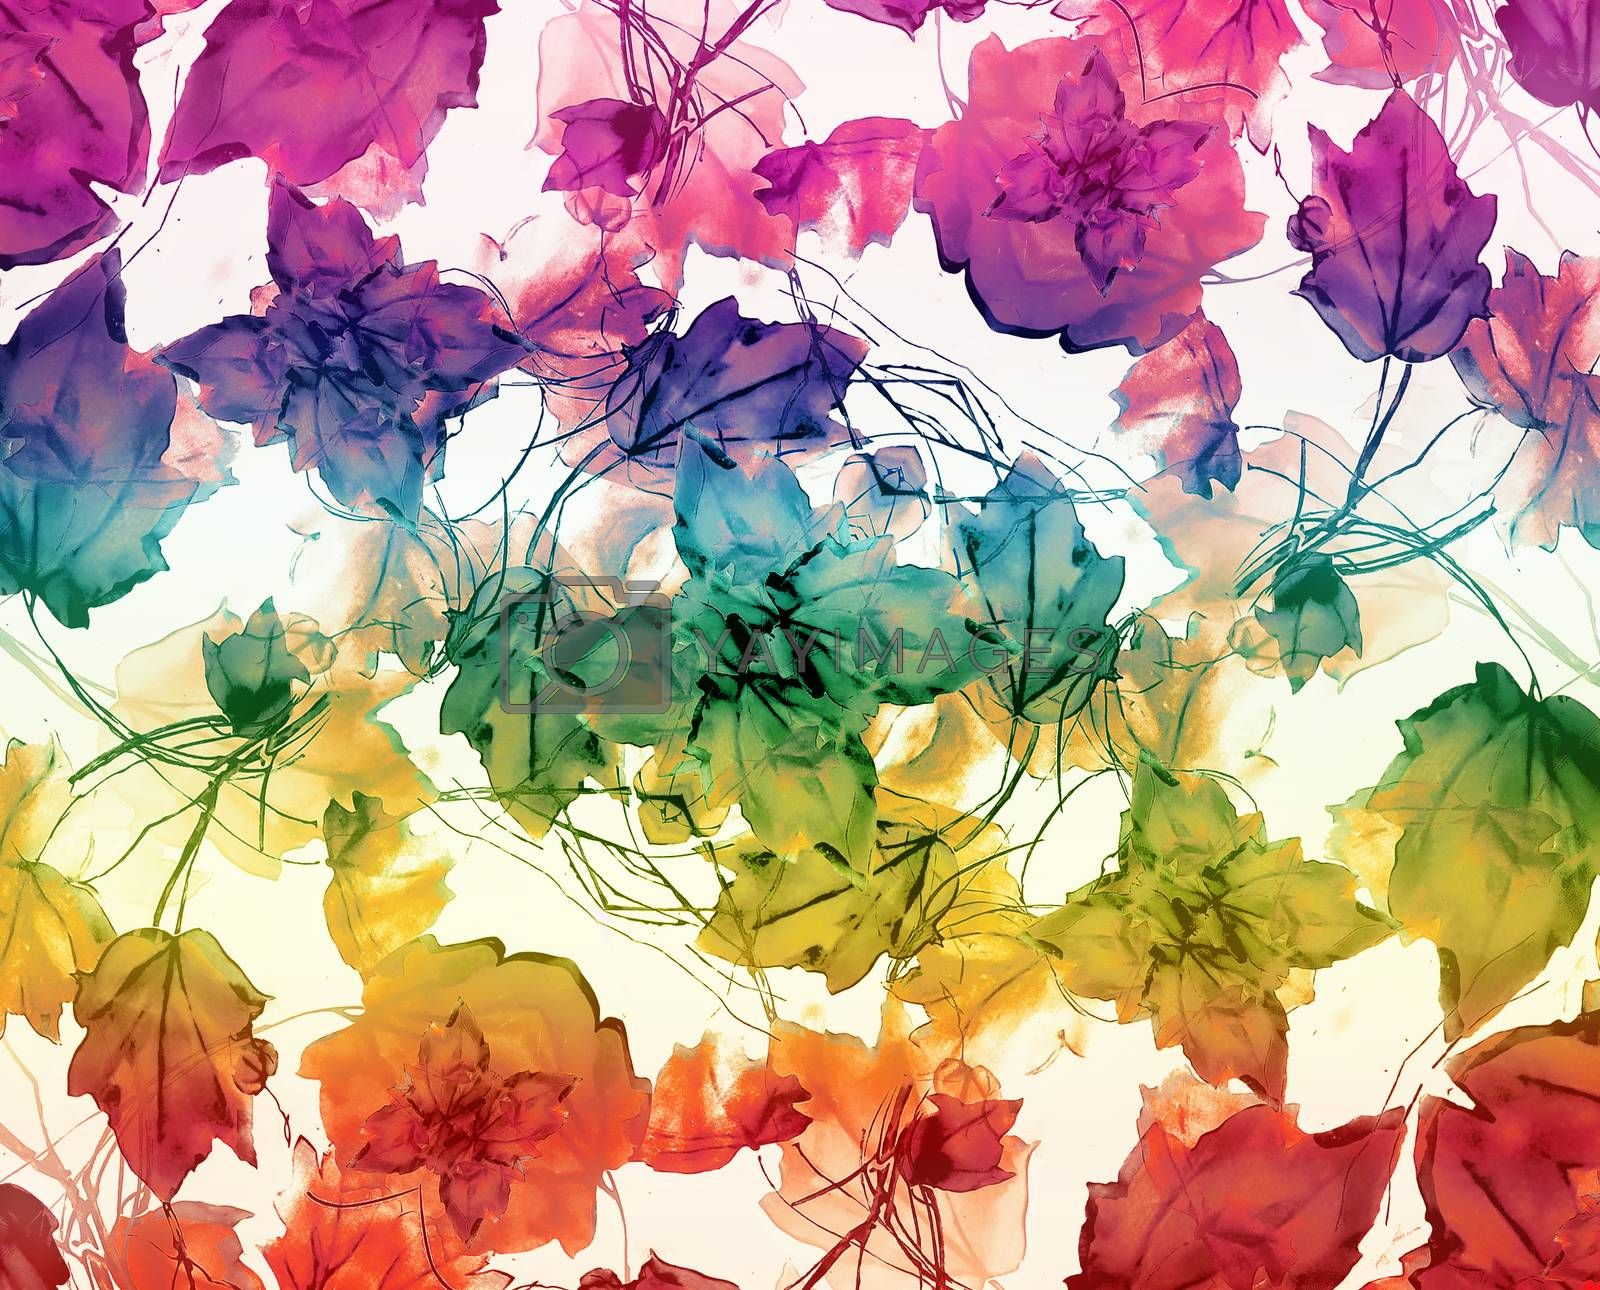 Beautiful decorative floral swirls motif pattern in soft multicolored watercolor tones and white background.